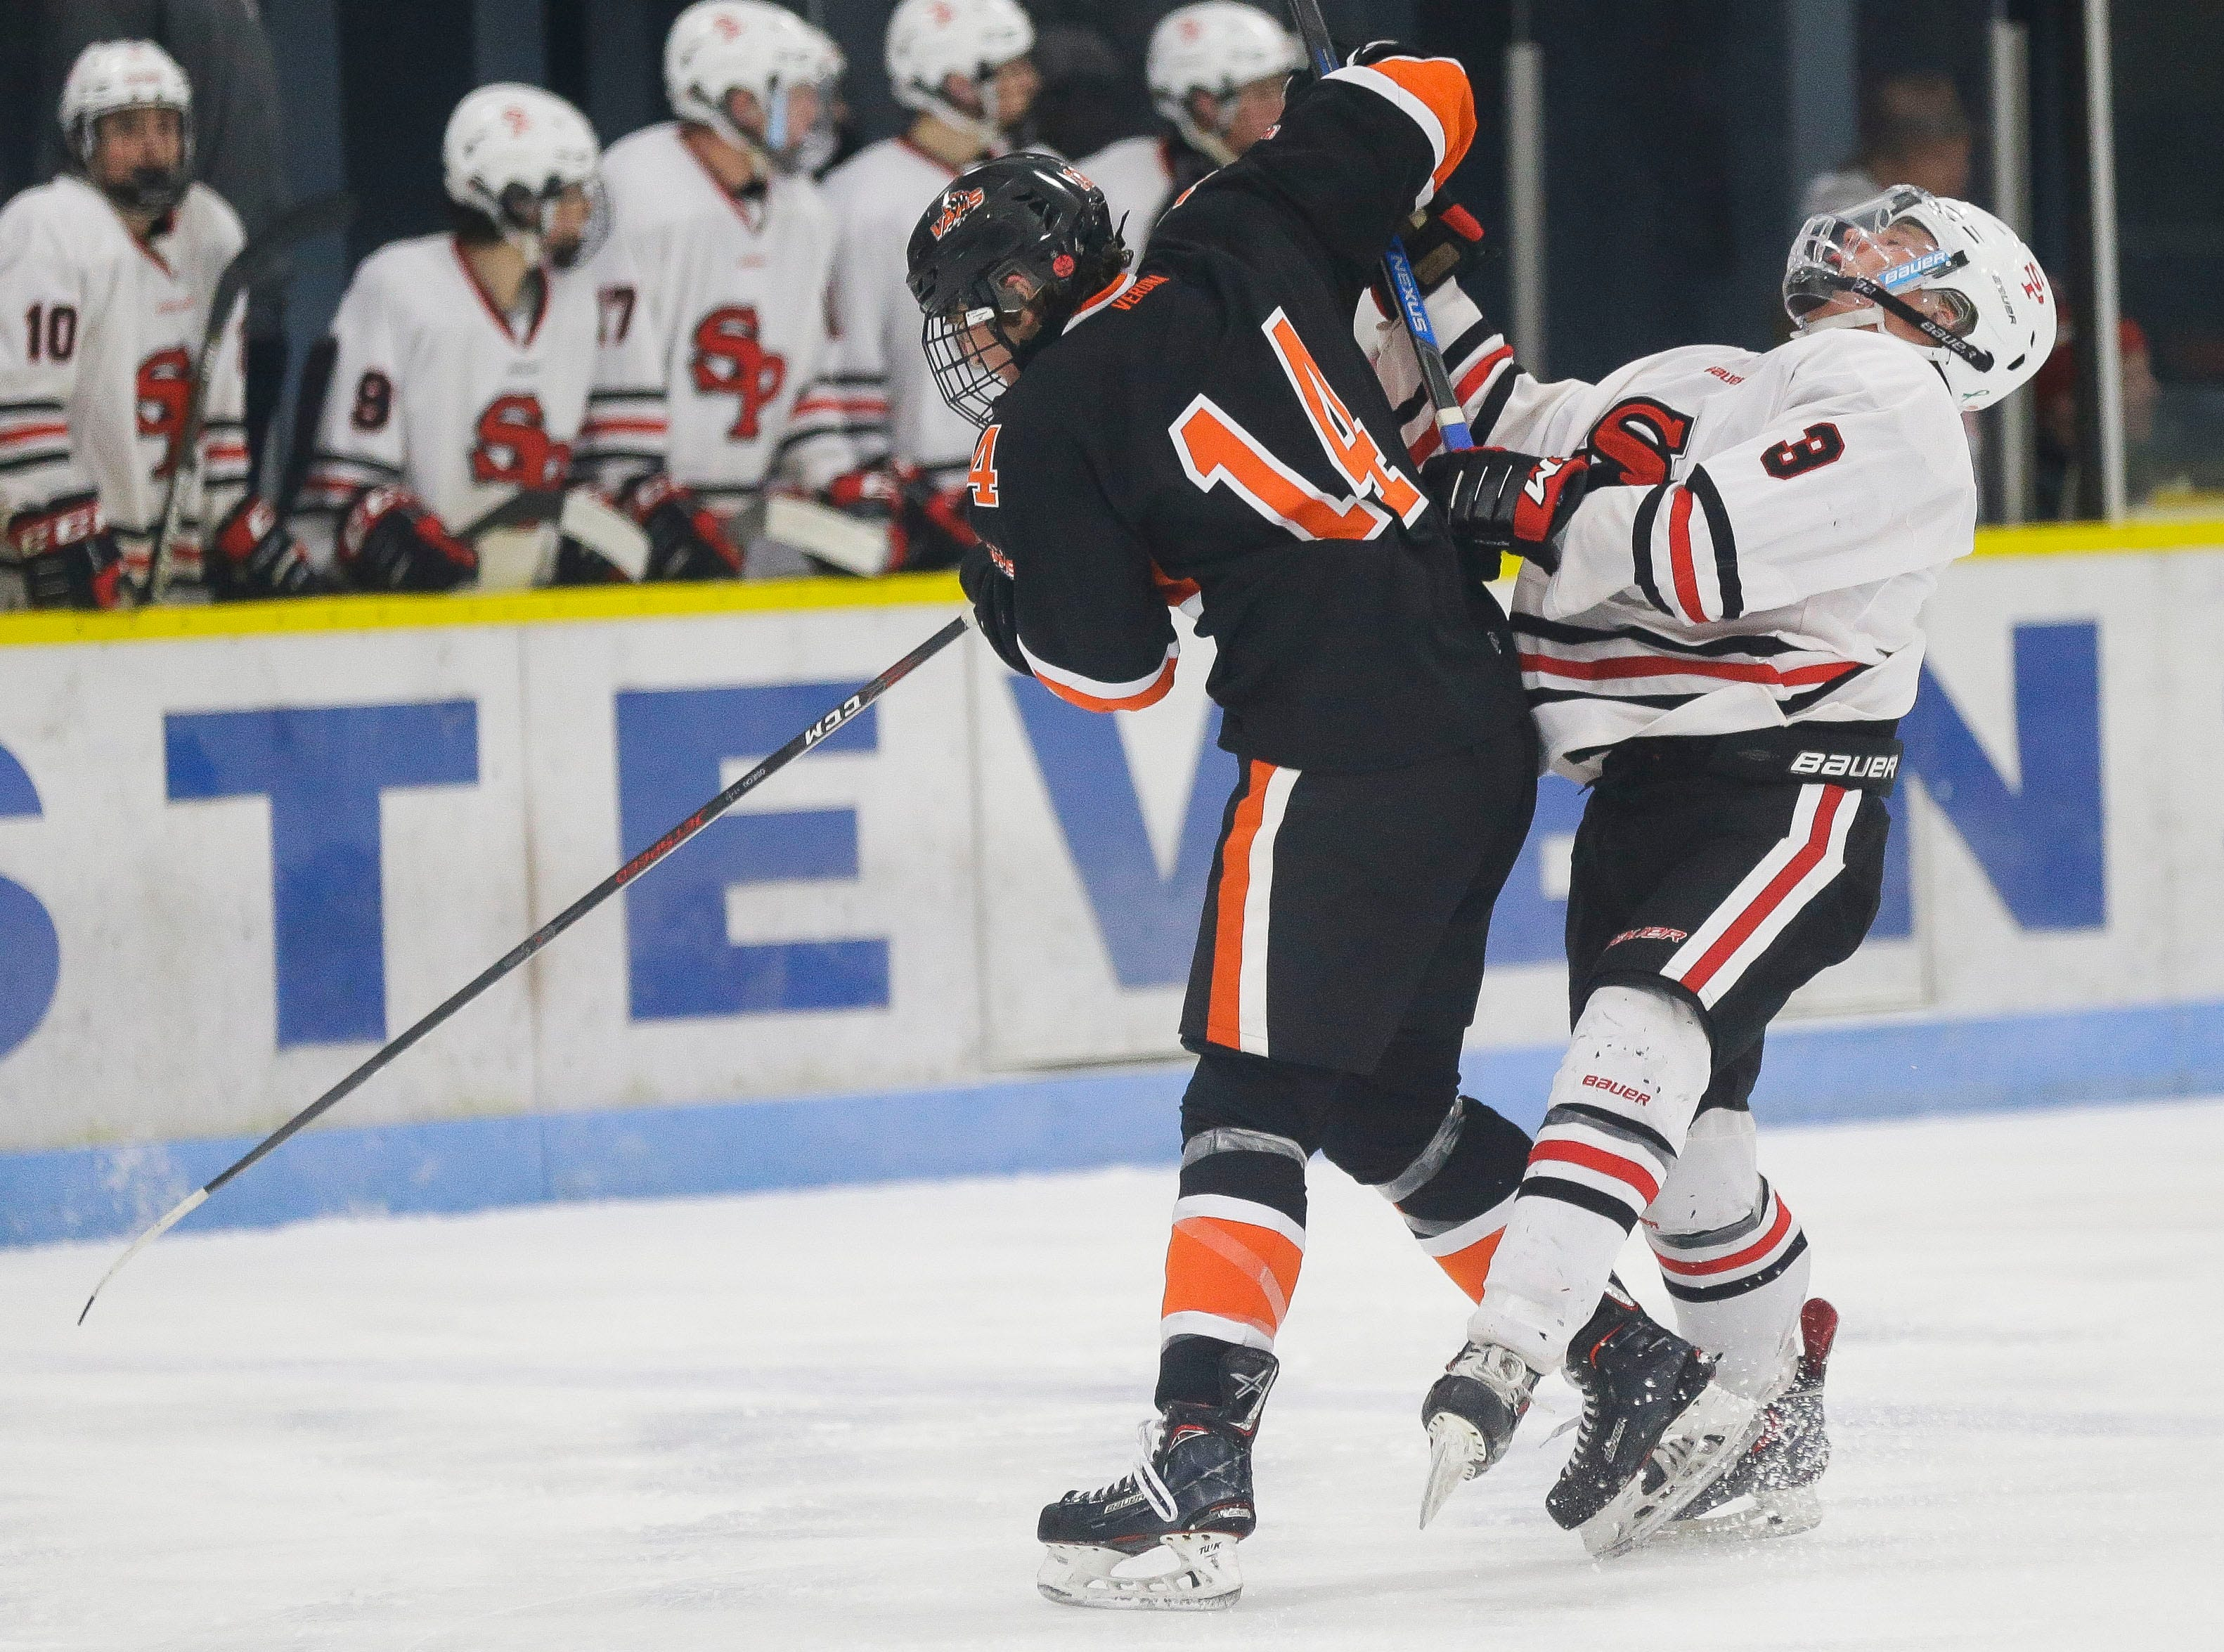 SPASH's Brady Dillingham (3) is checked by Verona's Jake Osiecki (14) on Saturday, January 26, 2019, at K.B. Willett Ice Arena in Stevens Point, Wis. Tork Mason/USA TODAY NETWORK-Wisconsin